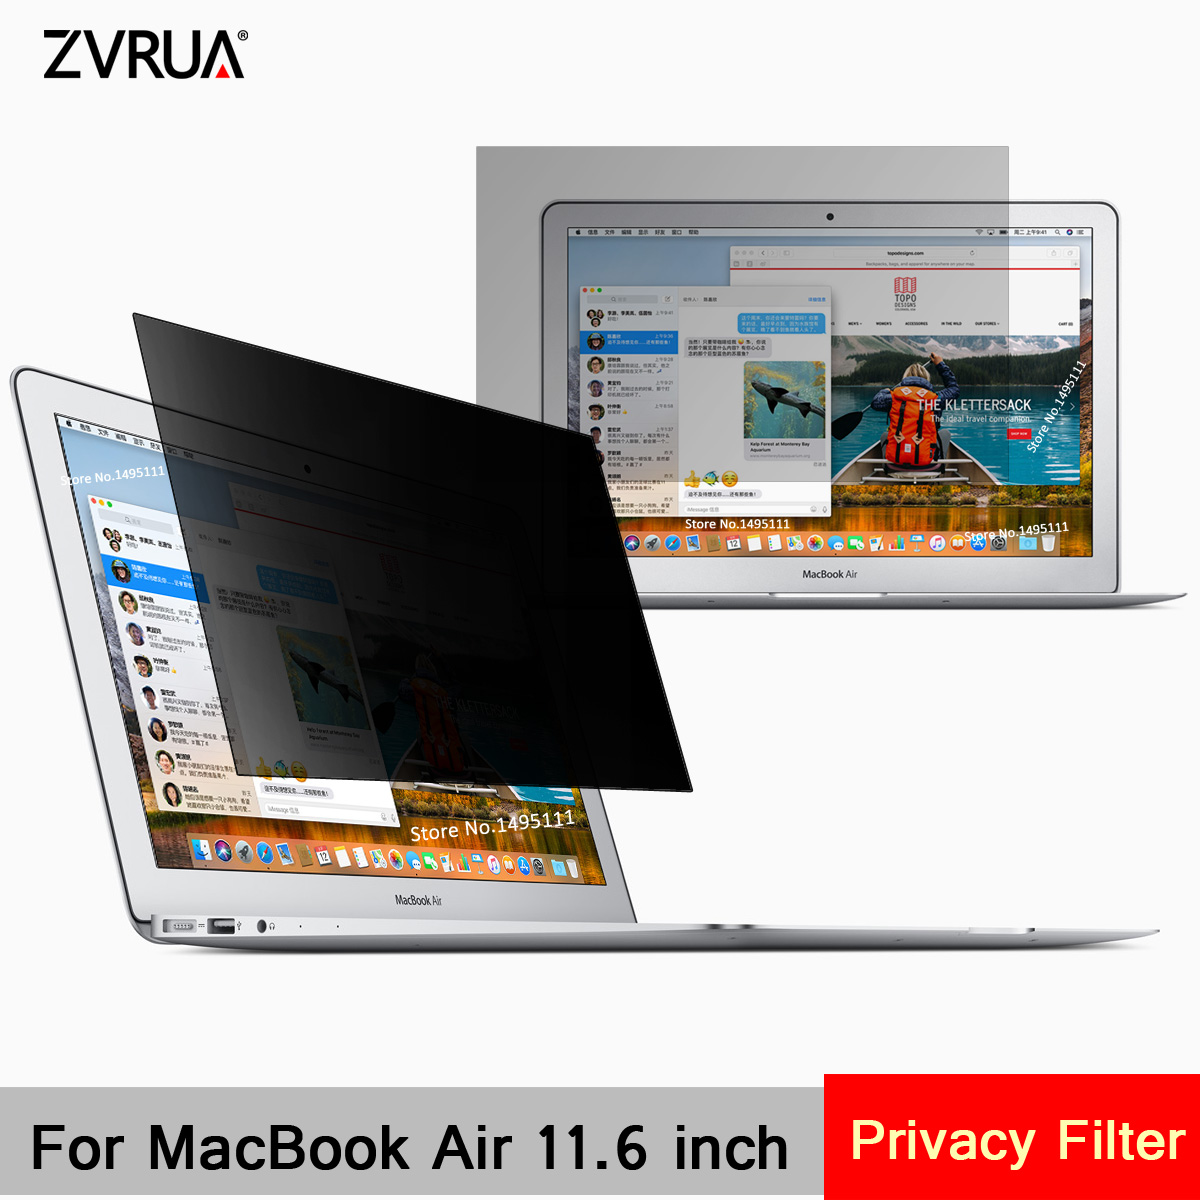 For Apple MacBook Air 11.6 inch (256mm*144mm) Privacy Filter Laptop Notebook Anti-glare Screen protector Protective film